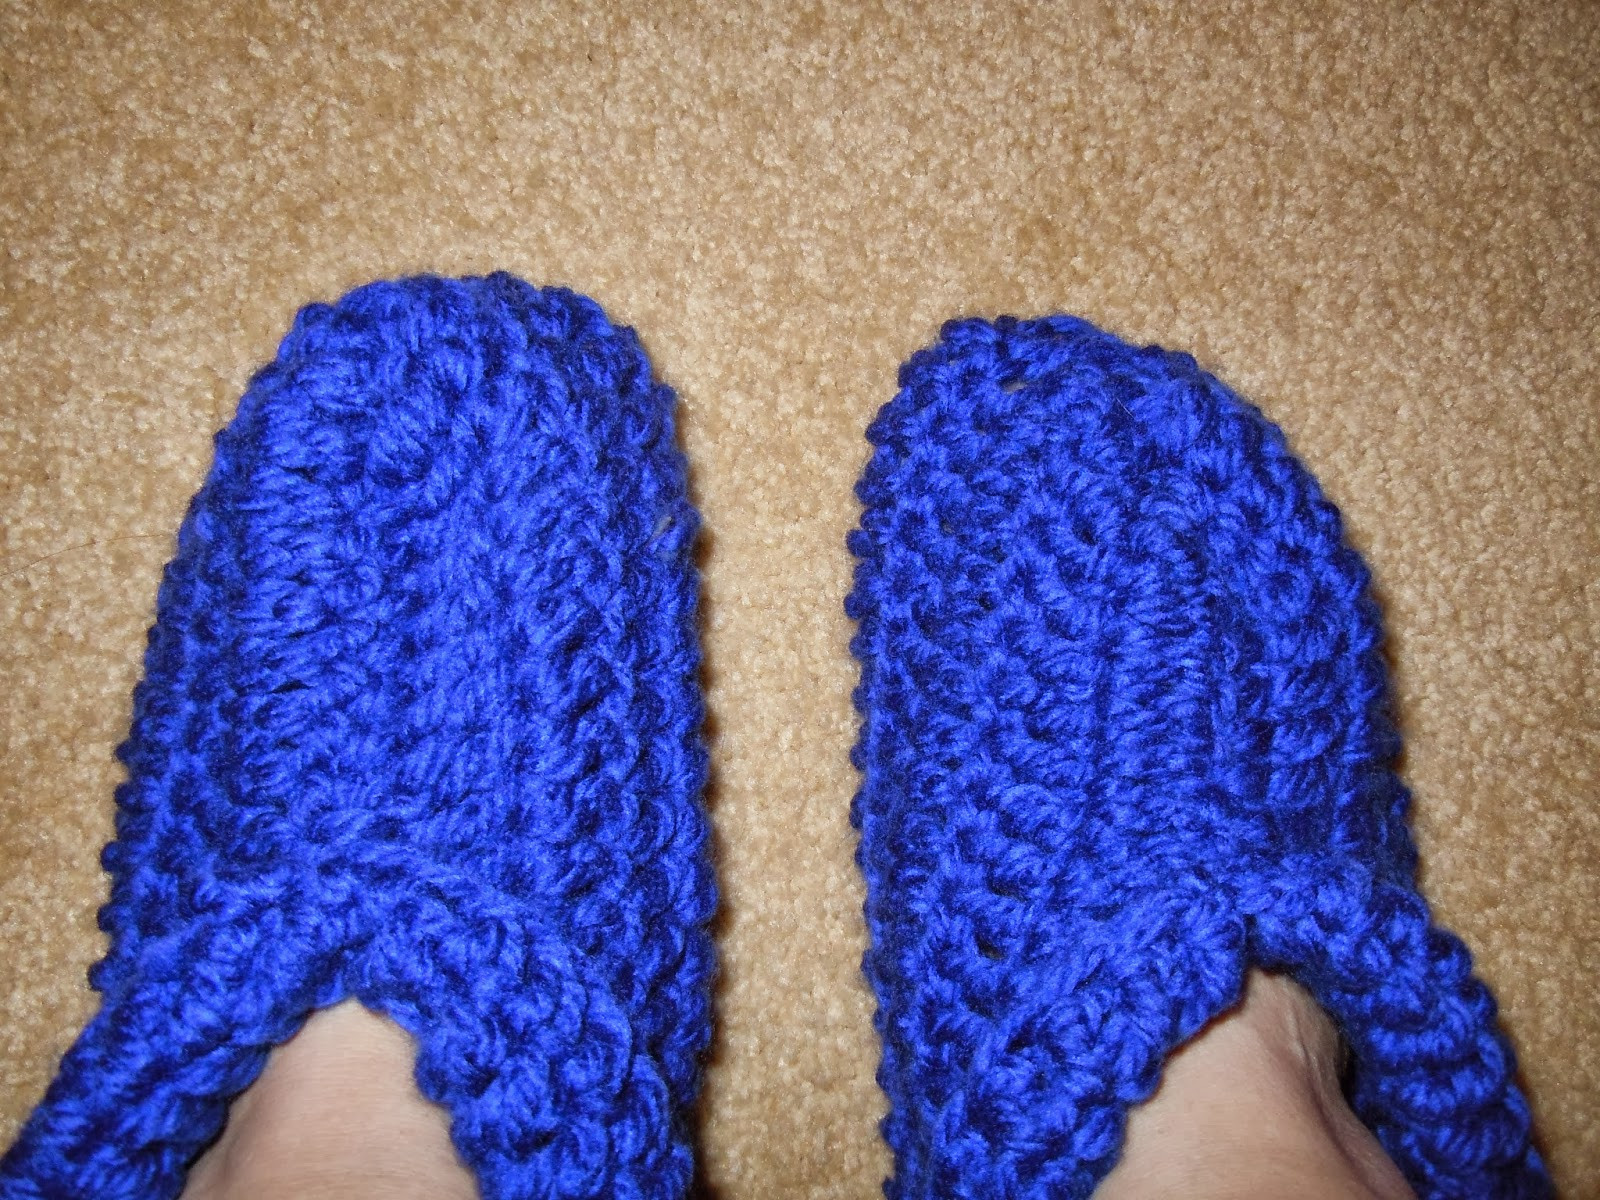 Craftdrawer Crafts Quick and Easy to Crochet Slippers